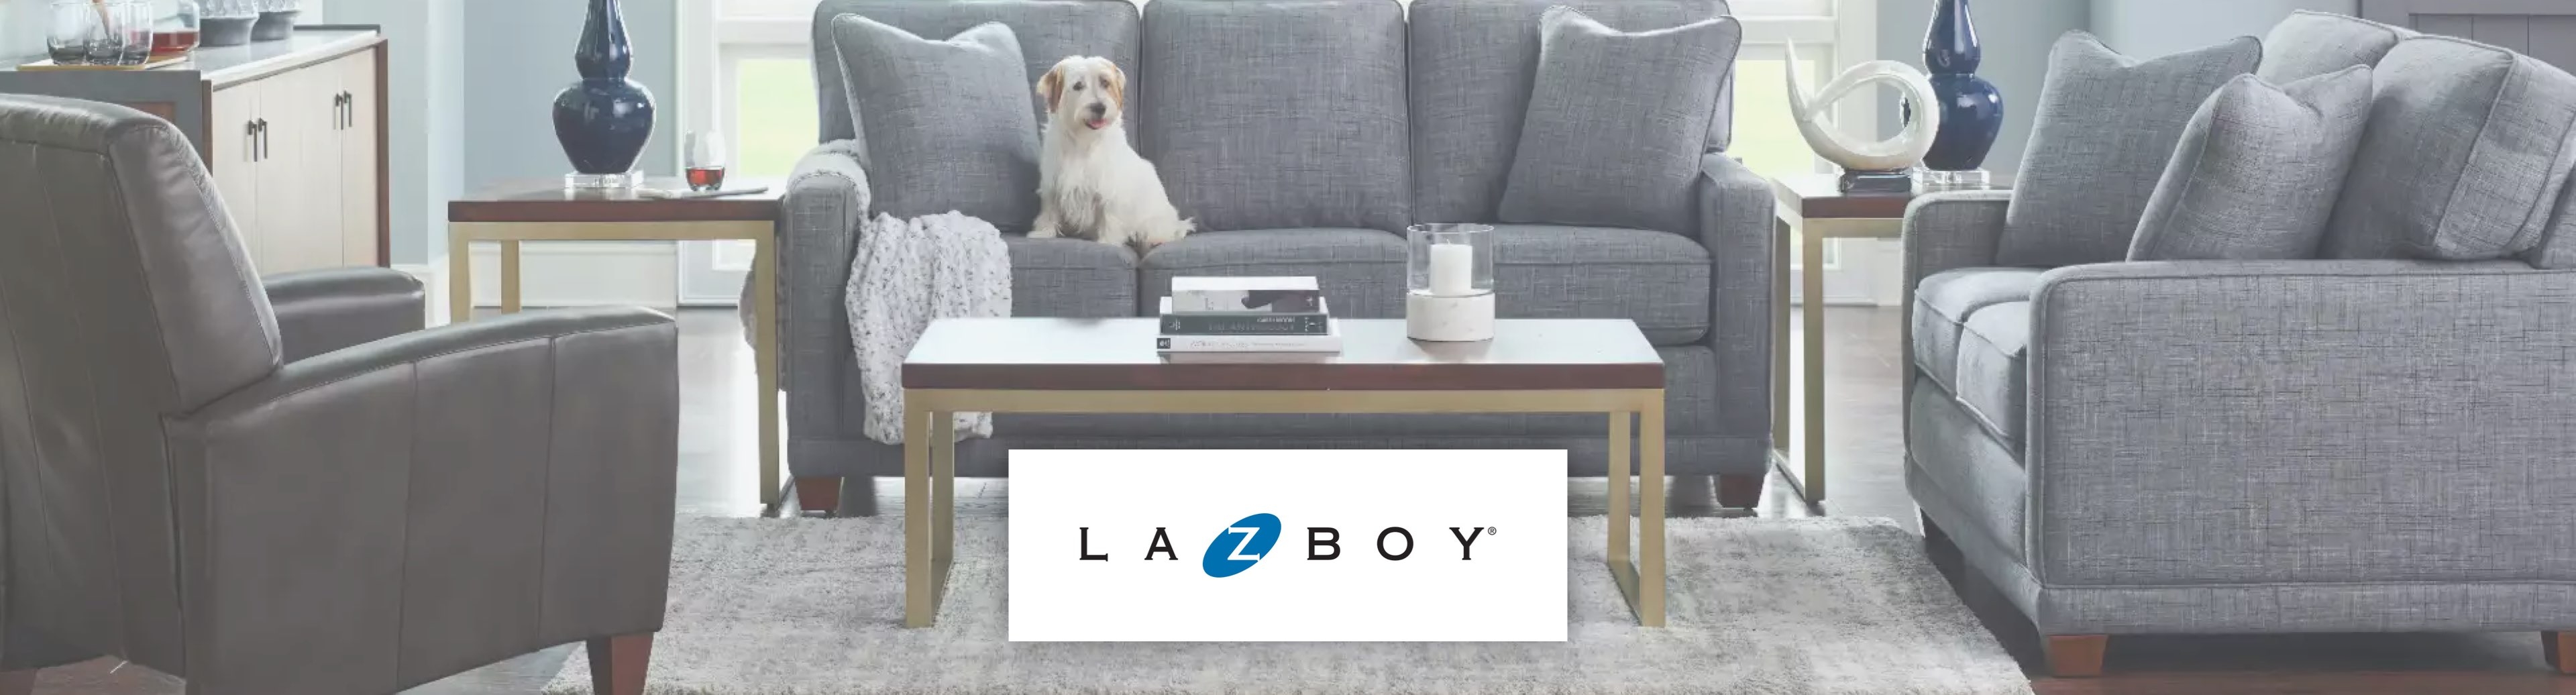 Shop La-z-boy at Johnson Hardware & Furniture